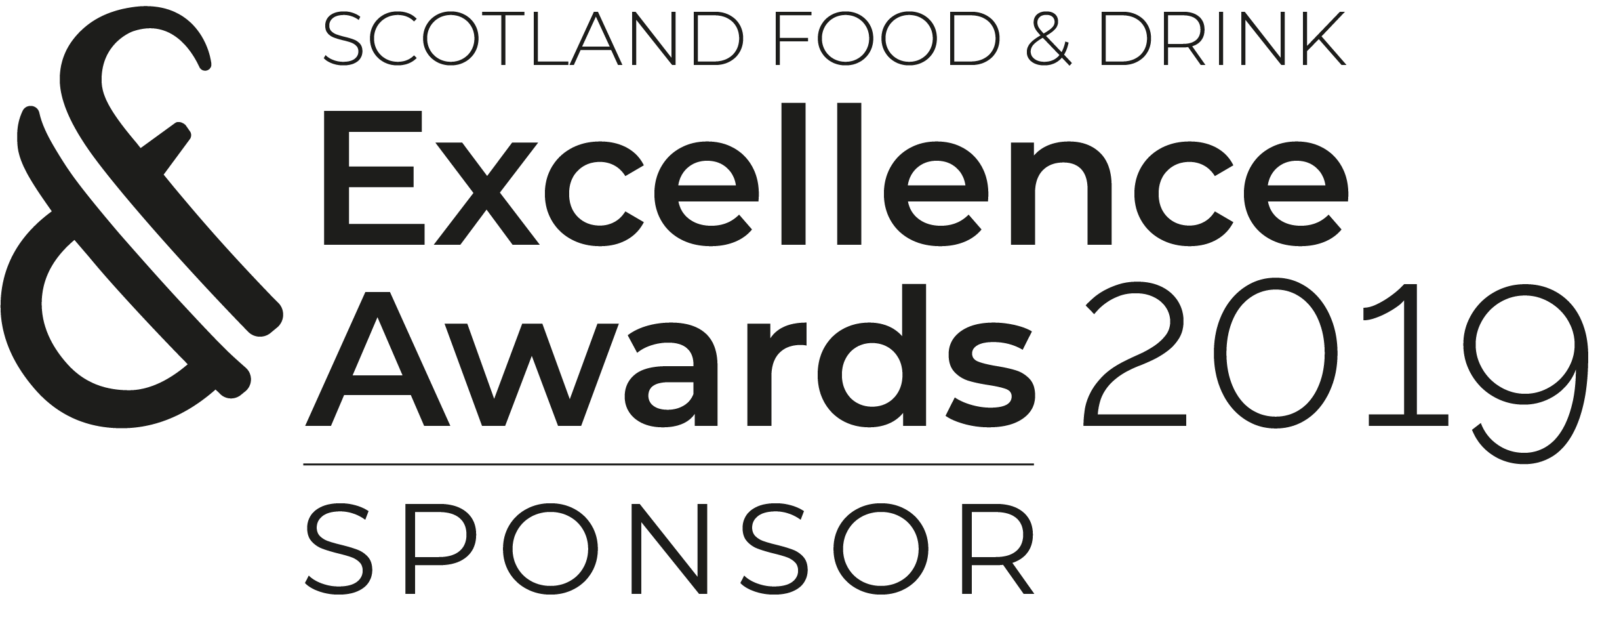 Scotland Food & Drink Excellence Awards